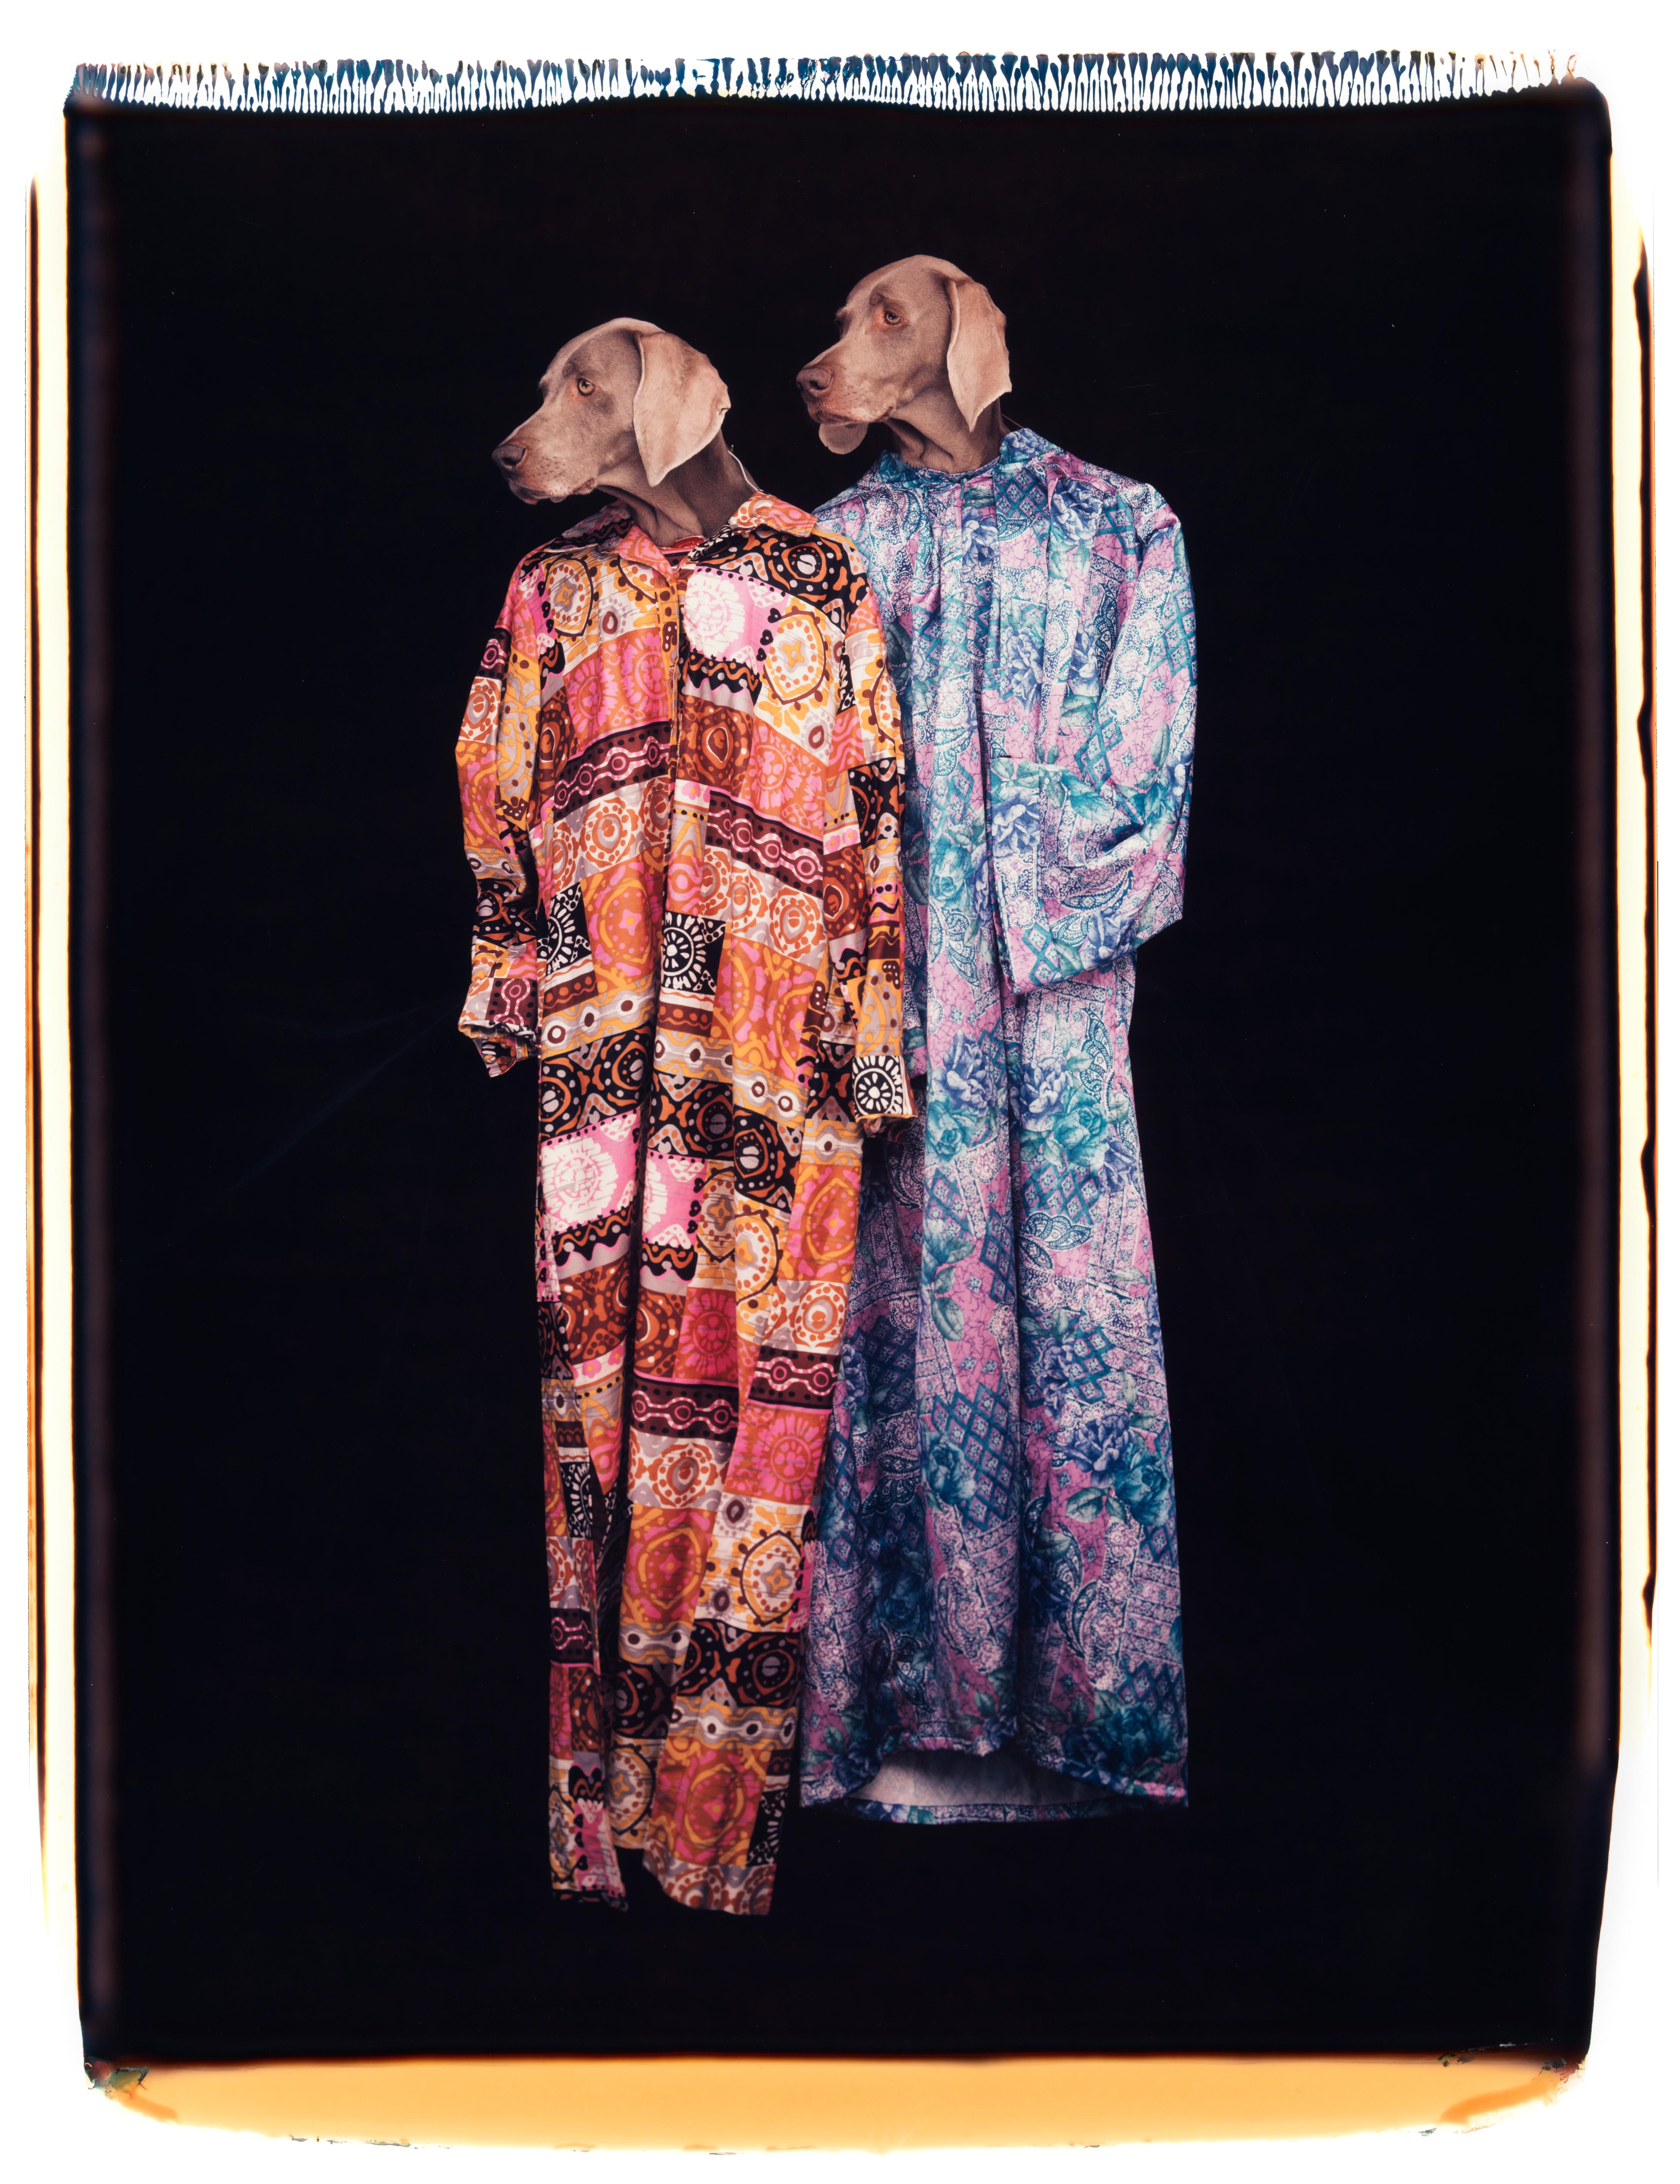 Look There - William Wegman (Colour Photography)